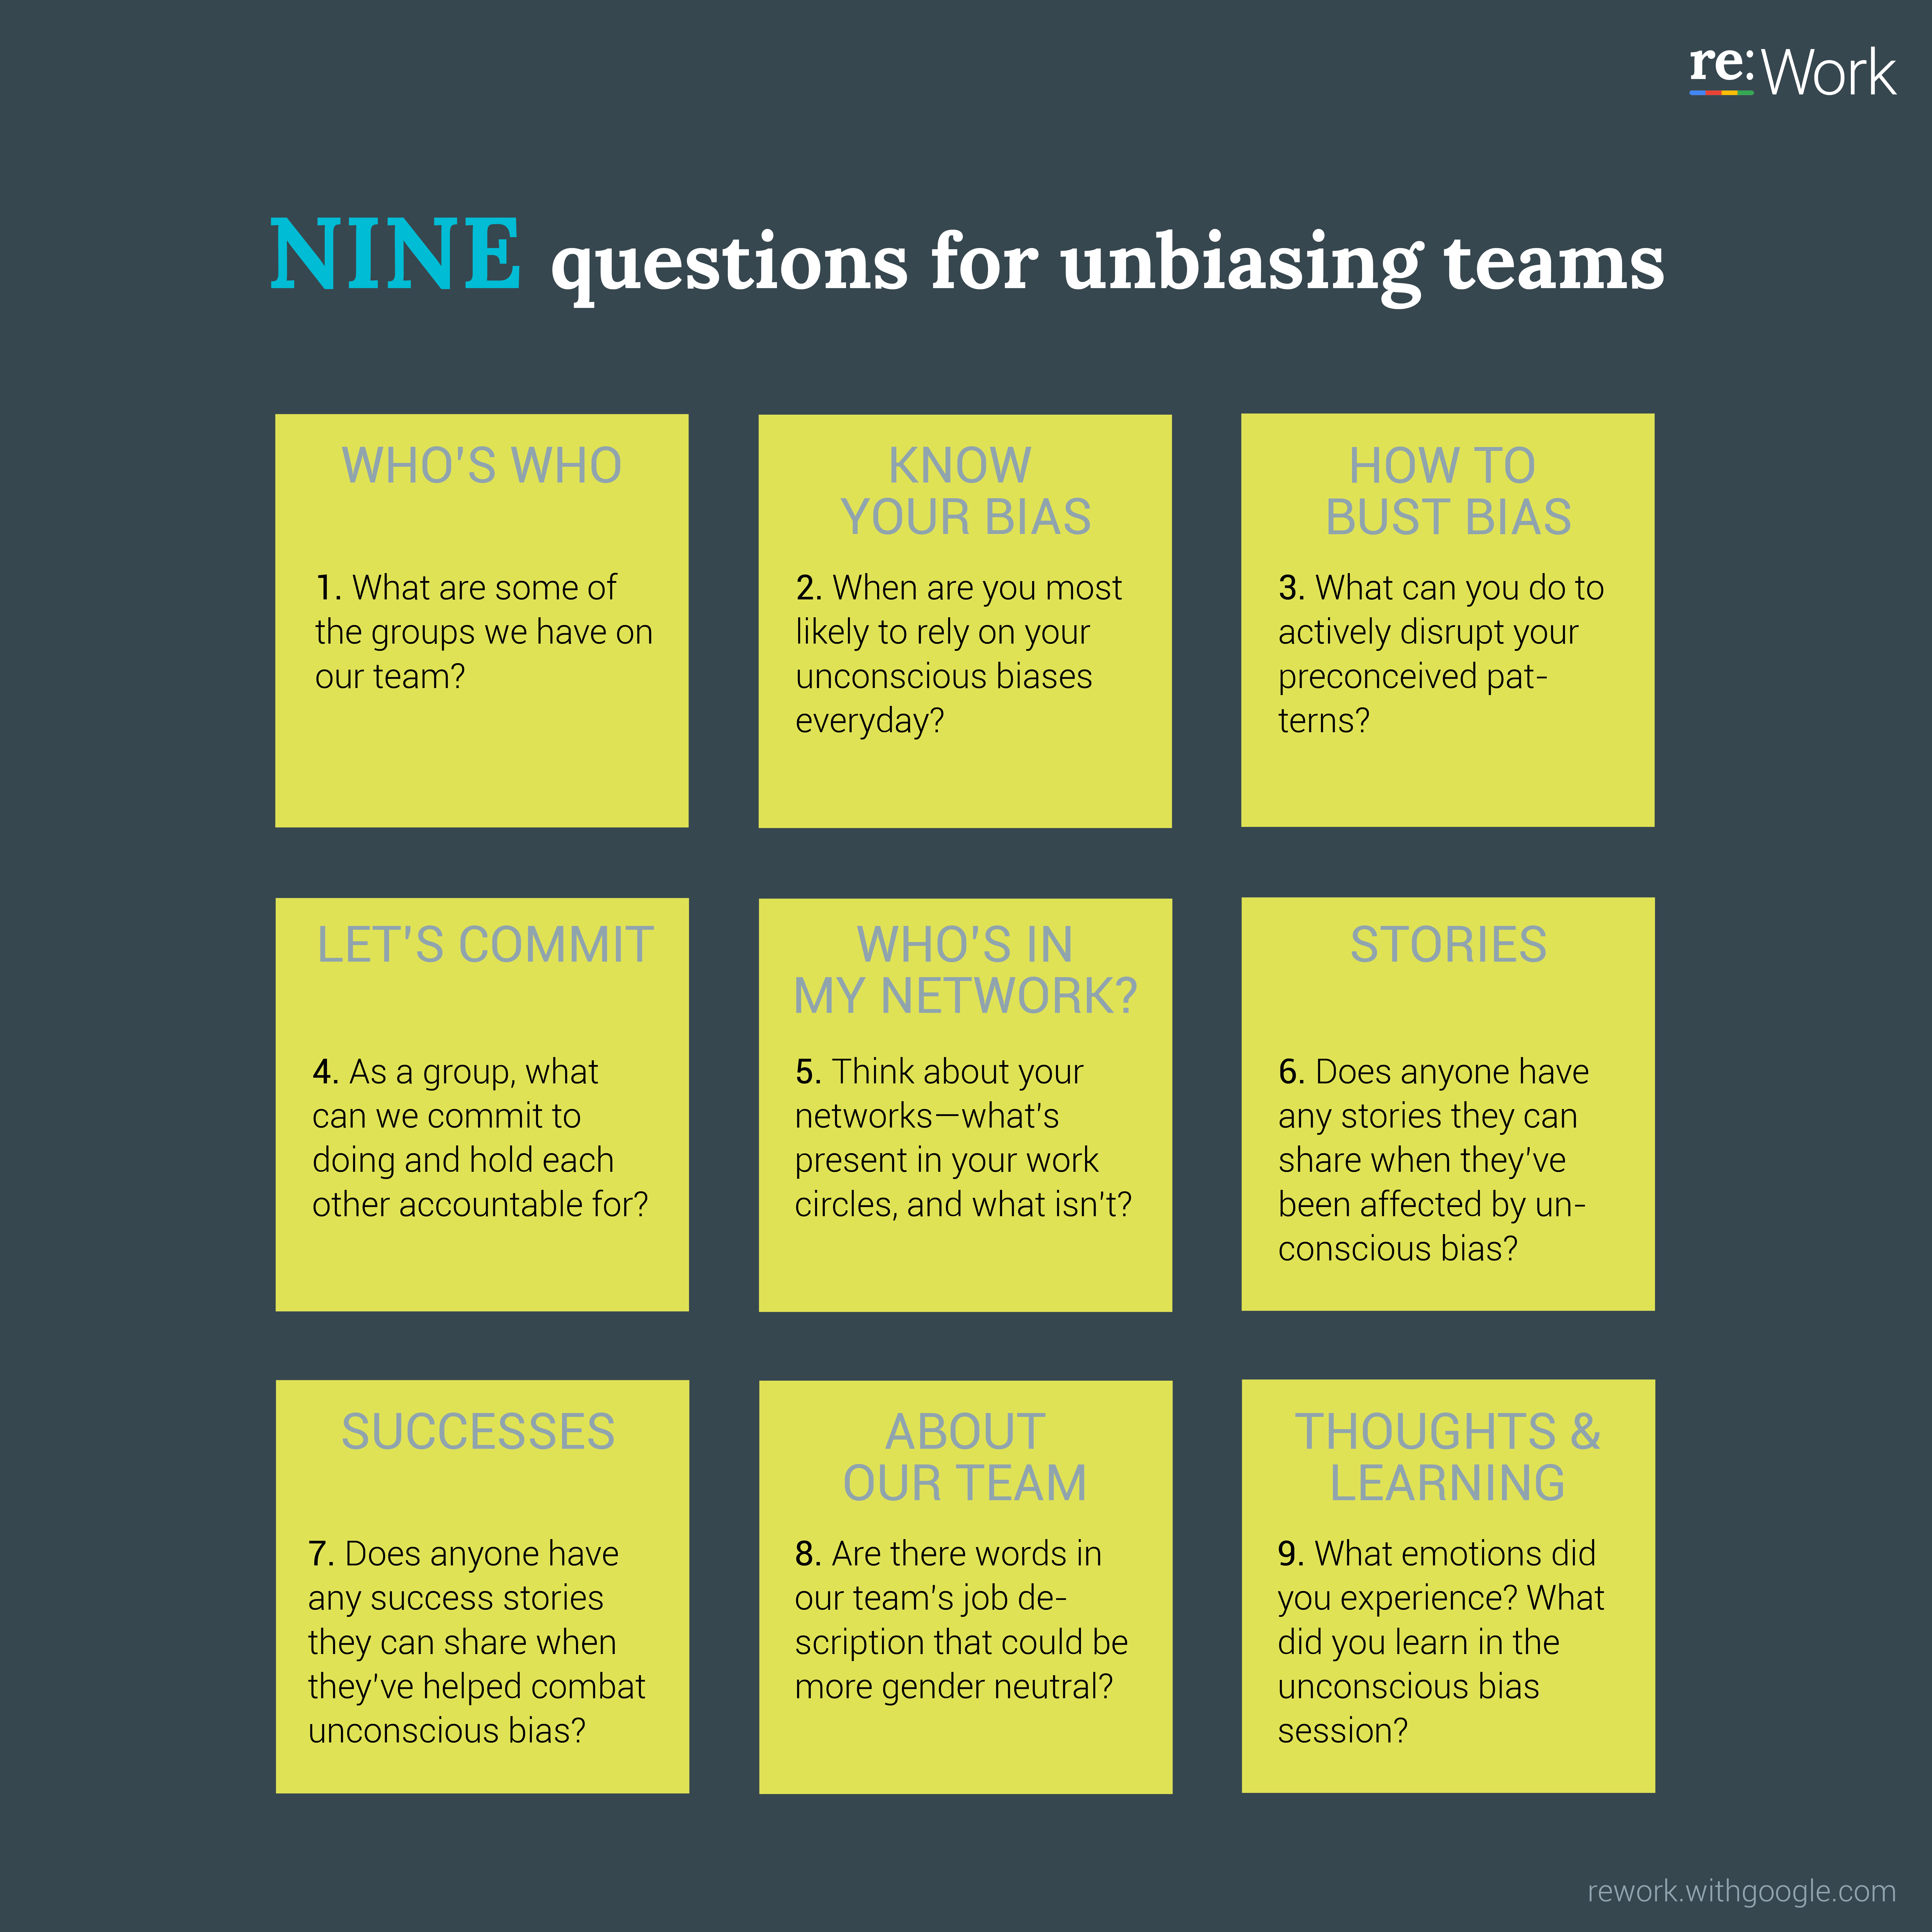 Nine questions for unbiasing teams: 1. Who's who? What are some of the groups we have on our team? 2. Know your bias. When are you most likely to rely on your unconscious biases everyday? 3. How to bust bias. What can you do to actively disrupt your preconceived patterns? 4. Let's commit. As a group what can we commit to doing and hold each other accountable for? 5. Who's in my network? Think about your networks - what's present in your work circles and what isn't? 6. Stories. Does anyone have any stories they can share when they've been affected by unconscious bias? 7. Successes. Does anyone have any success stories they can share when they've helped combat unconscious bias? 8. About our team. Are there words in our team's job descriptions that could be more gender neutral? 9. Thoughts & Learning. What emotions did you experience? What did you learn in the unconscious bias session?